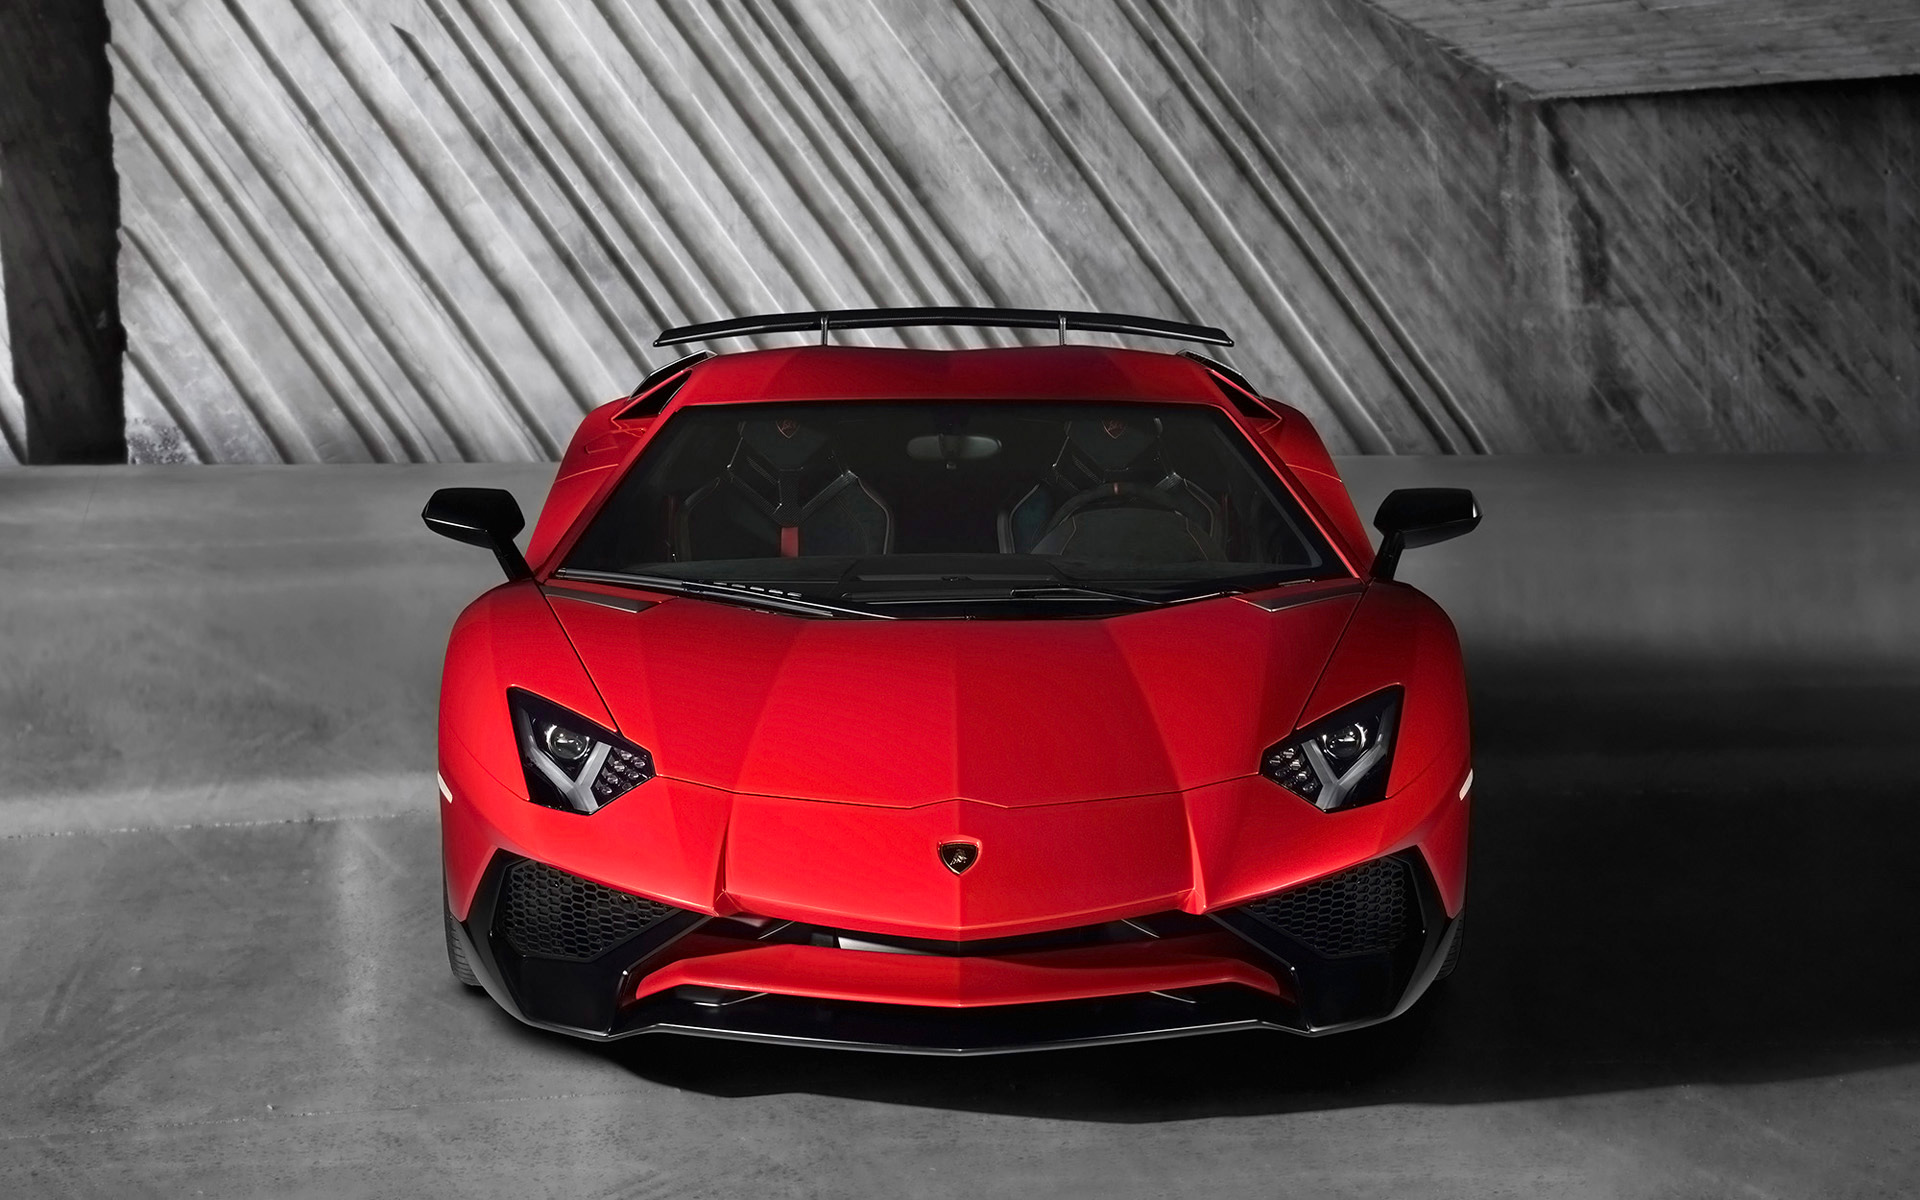 Lamborghini Aventador Wallpapers HD A7 Red - lamborghini aventador desktop sports cars, race cars, luxury cars, expensive cars, wallpapers pictures images free download